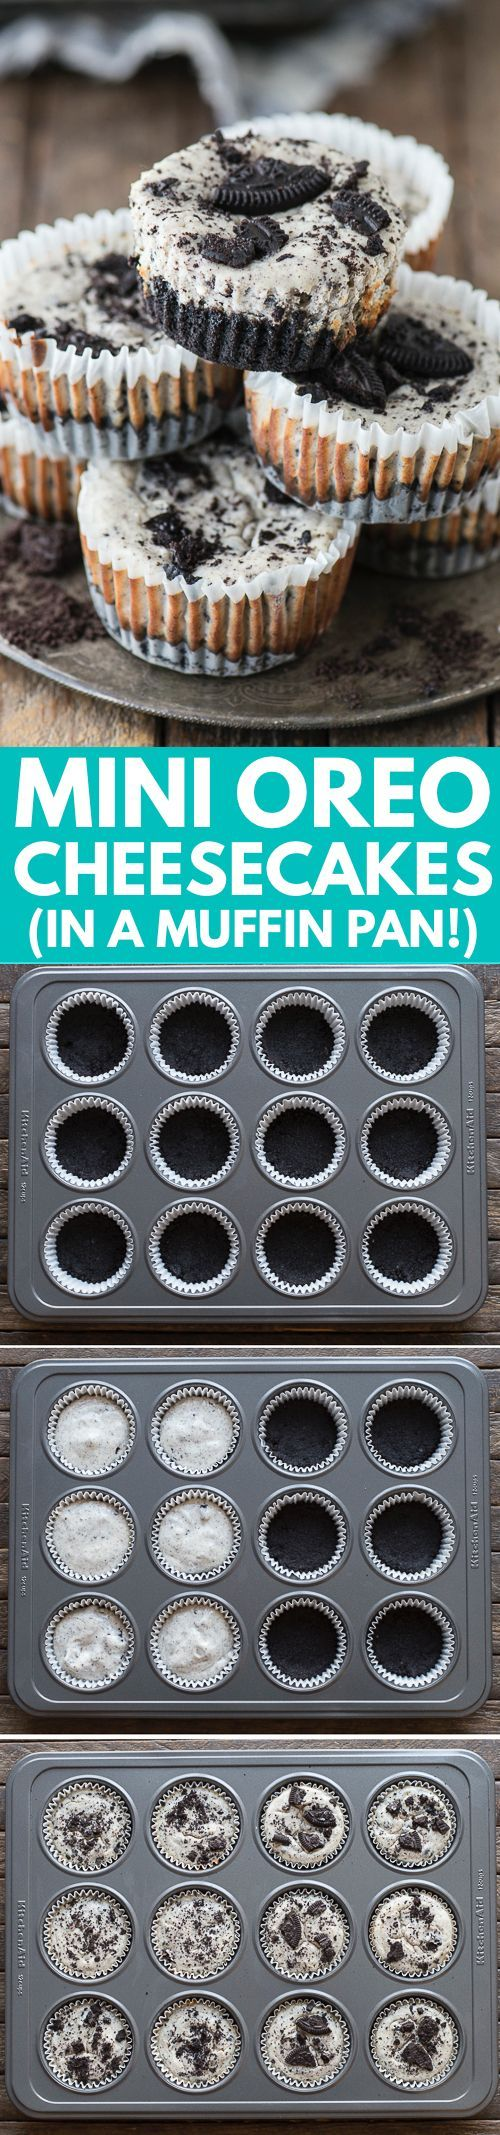 7 ingredient mini oreo cheesecake recipe made in a muffin pan!                                                                                                                                                                                 More